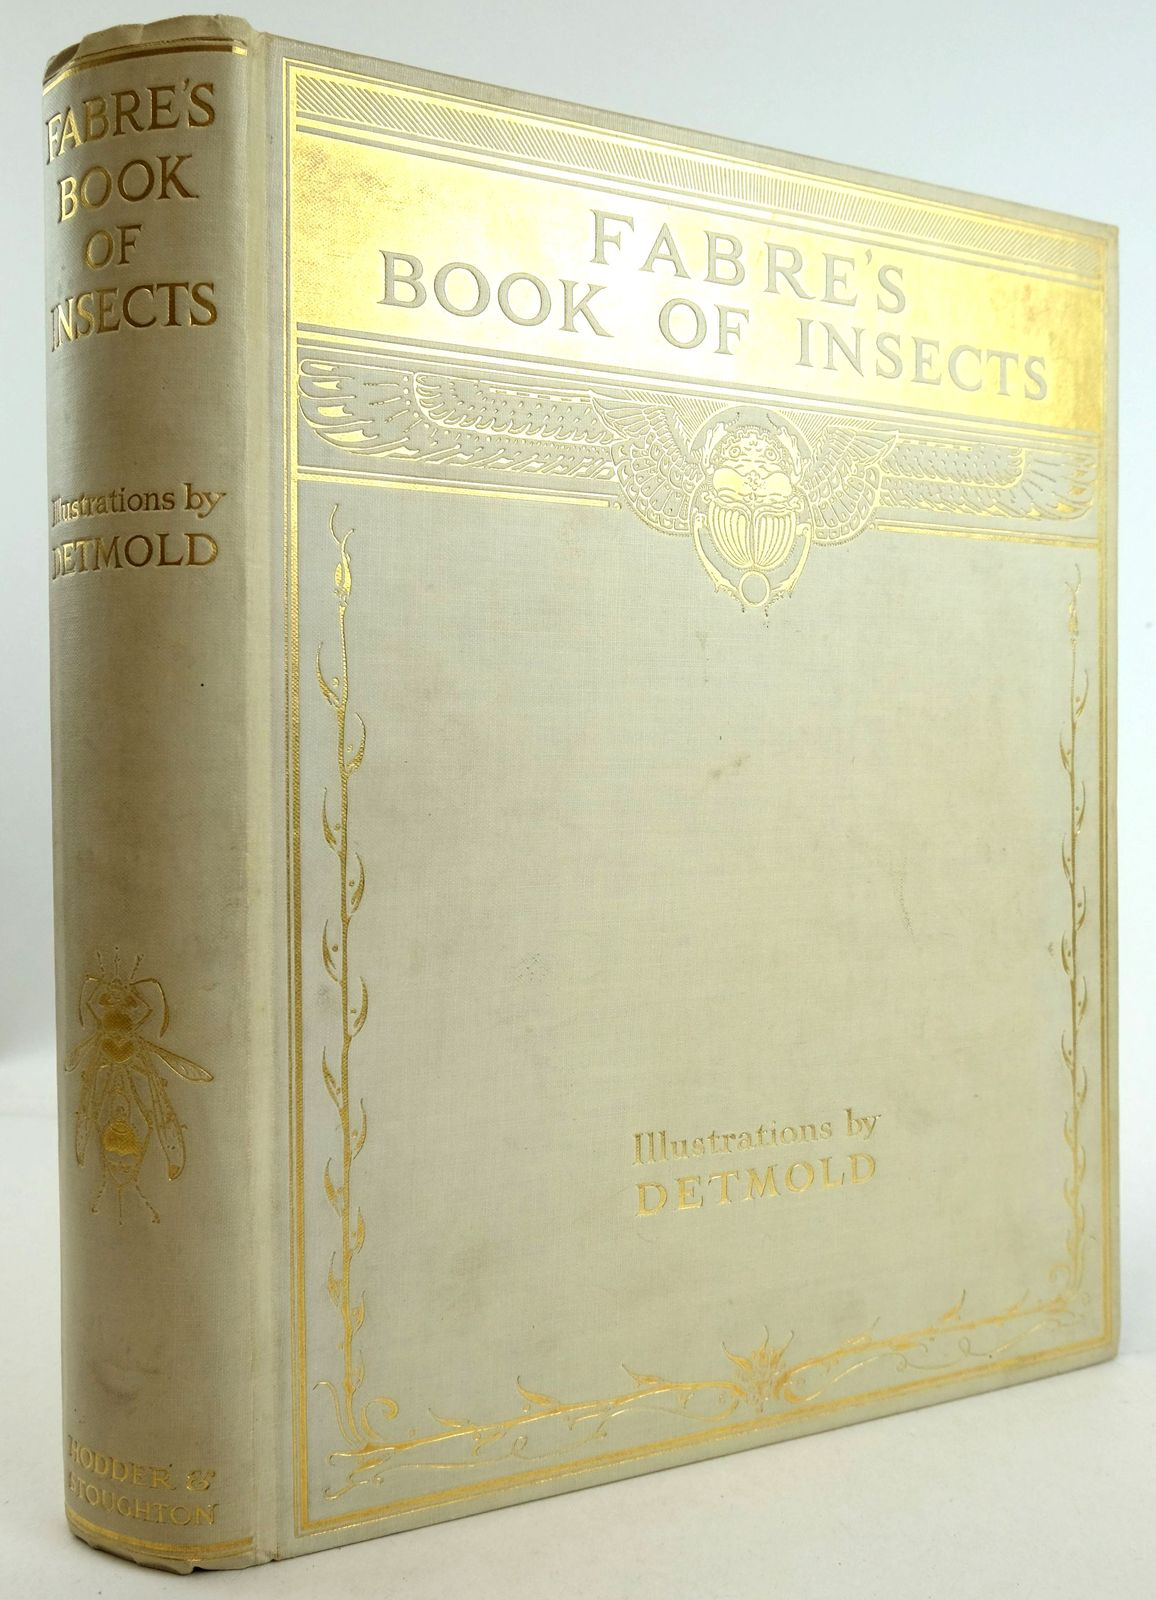 Photo of FABRE'S BOOK OF INSECTS- Stock Number: 1819857